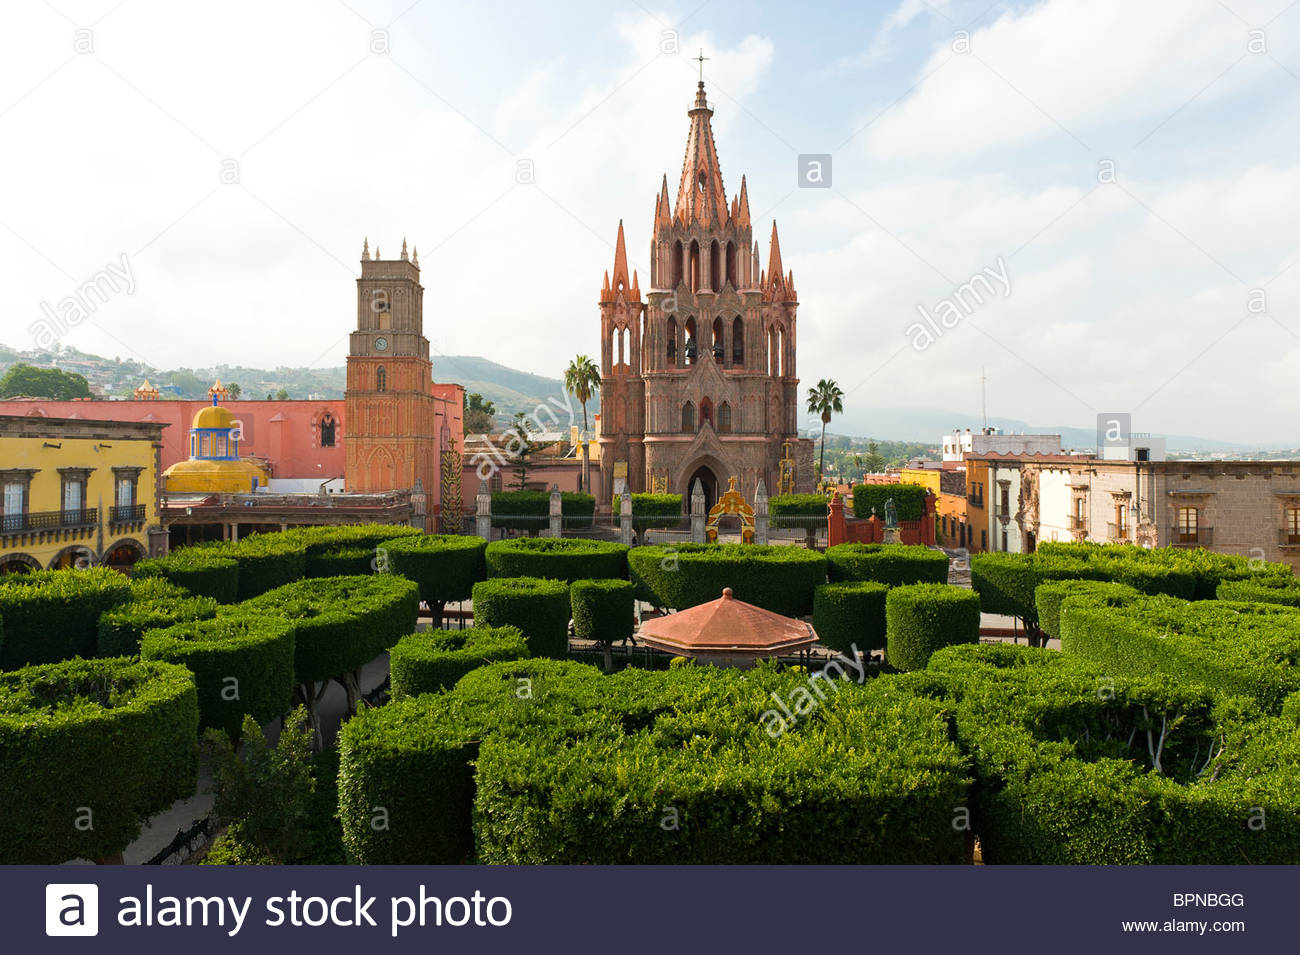 Overview of the main square with the Church of St. Michael the Archangel in background, San Miguel de Allende, Mexico - Stock Image